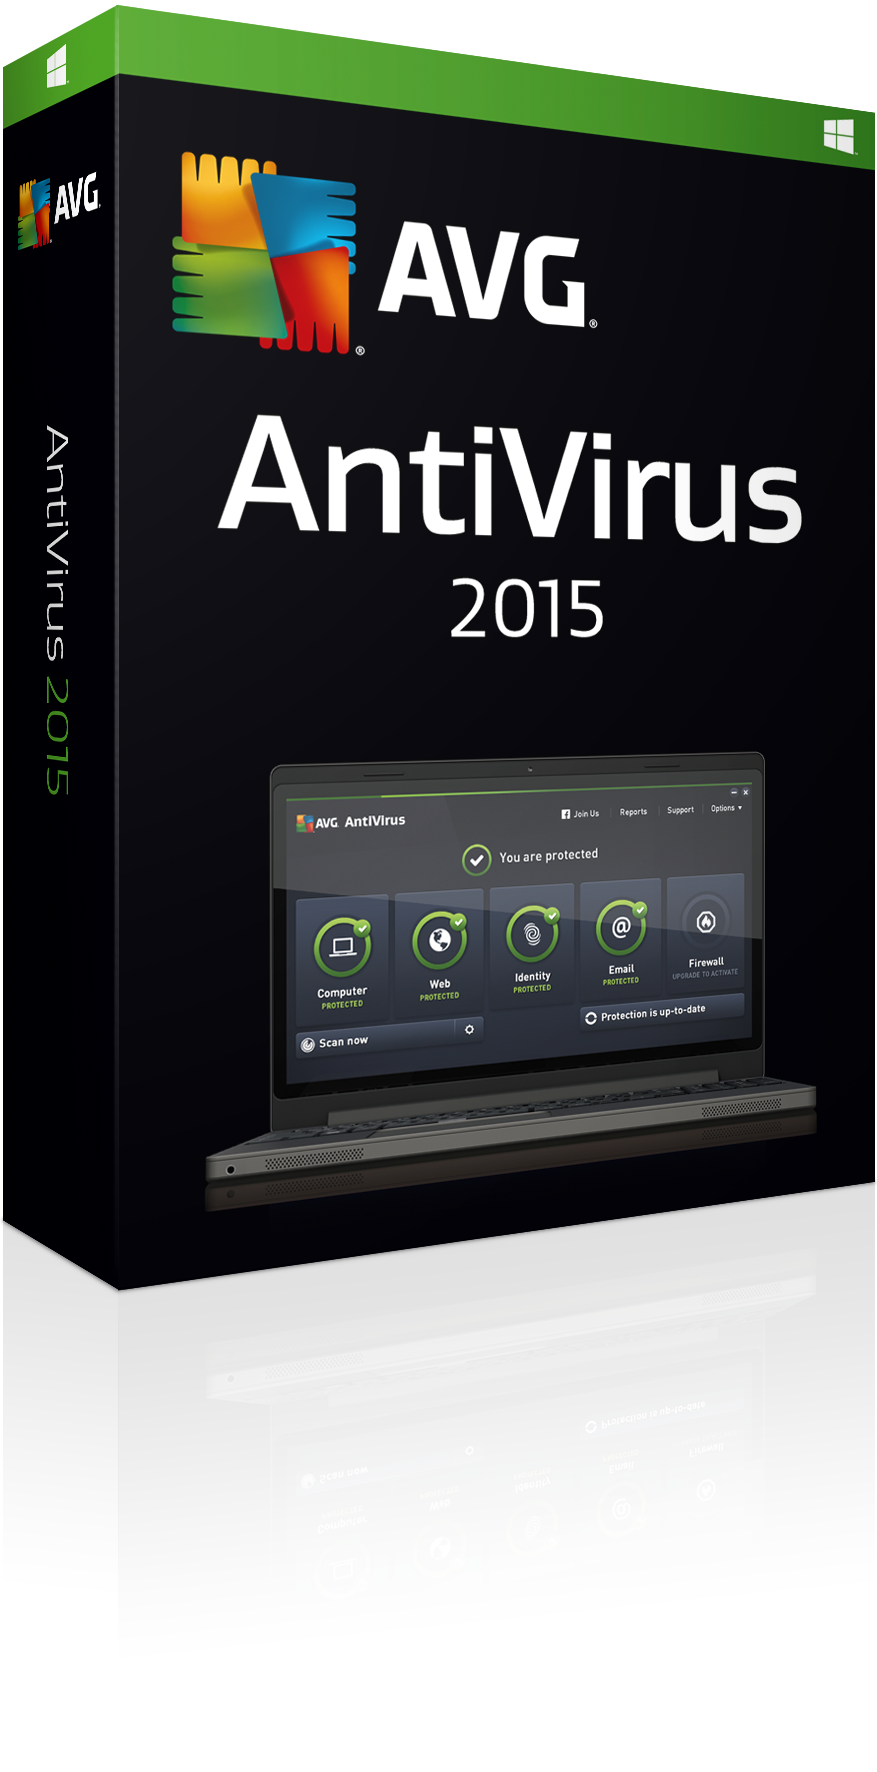 avg antivirus Avg antivirus free is a good solution for those who need basic protection  against viruses, malware, and other threats lurking out there on the.